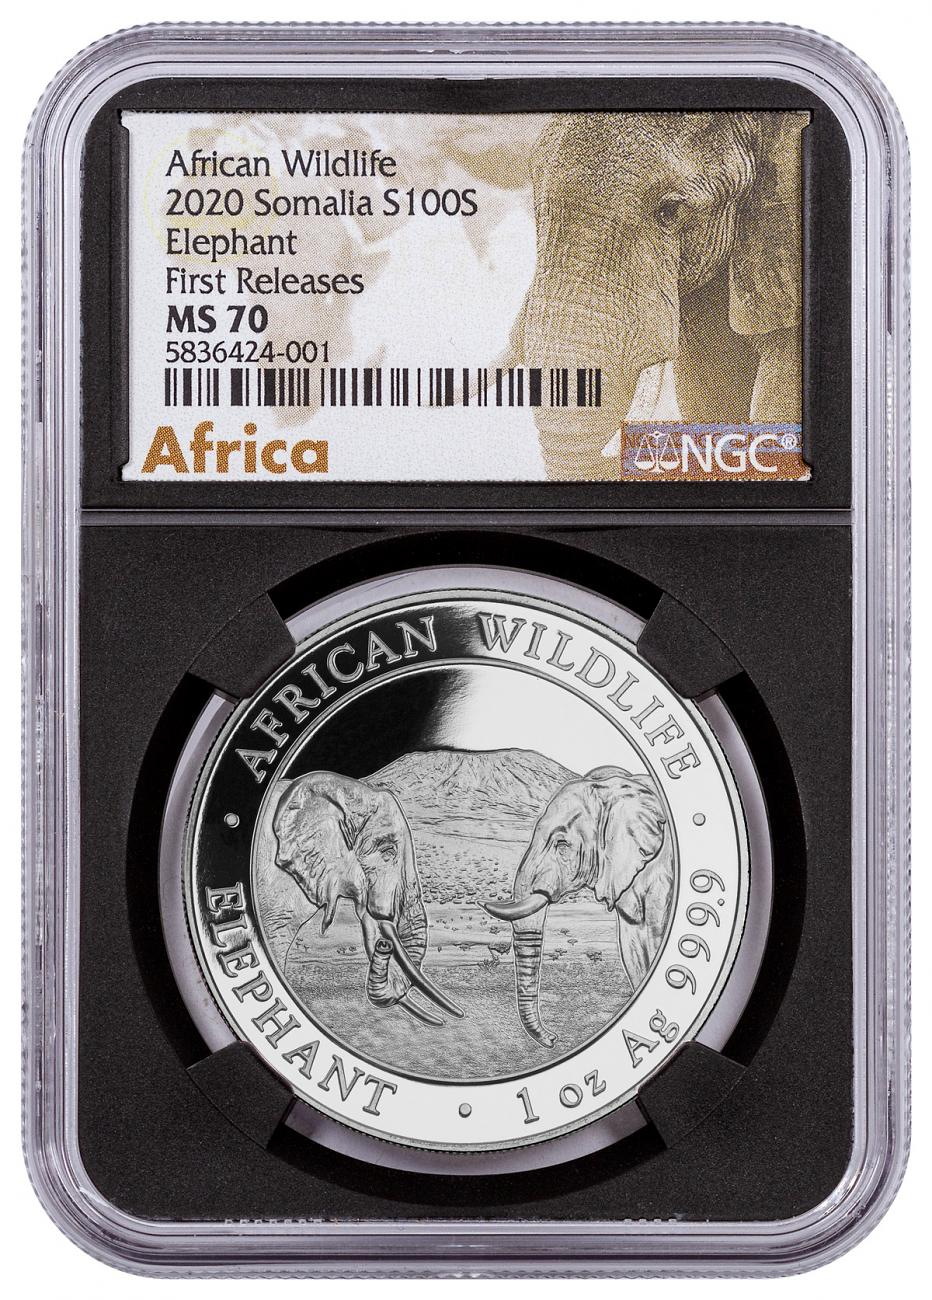 2020 Somalia 1 oz Silver Elephant Sh100 Coin NGC MS70 FR Black Core Holder Exclusive African Elephant Label